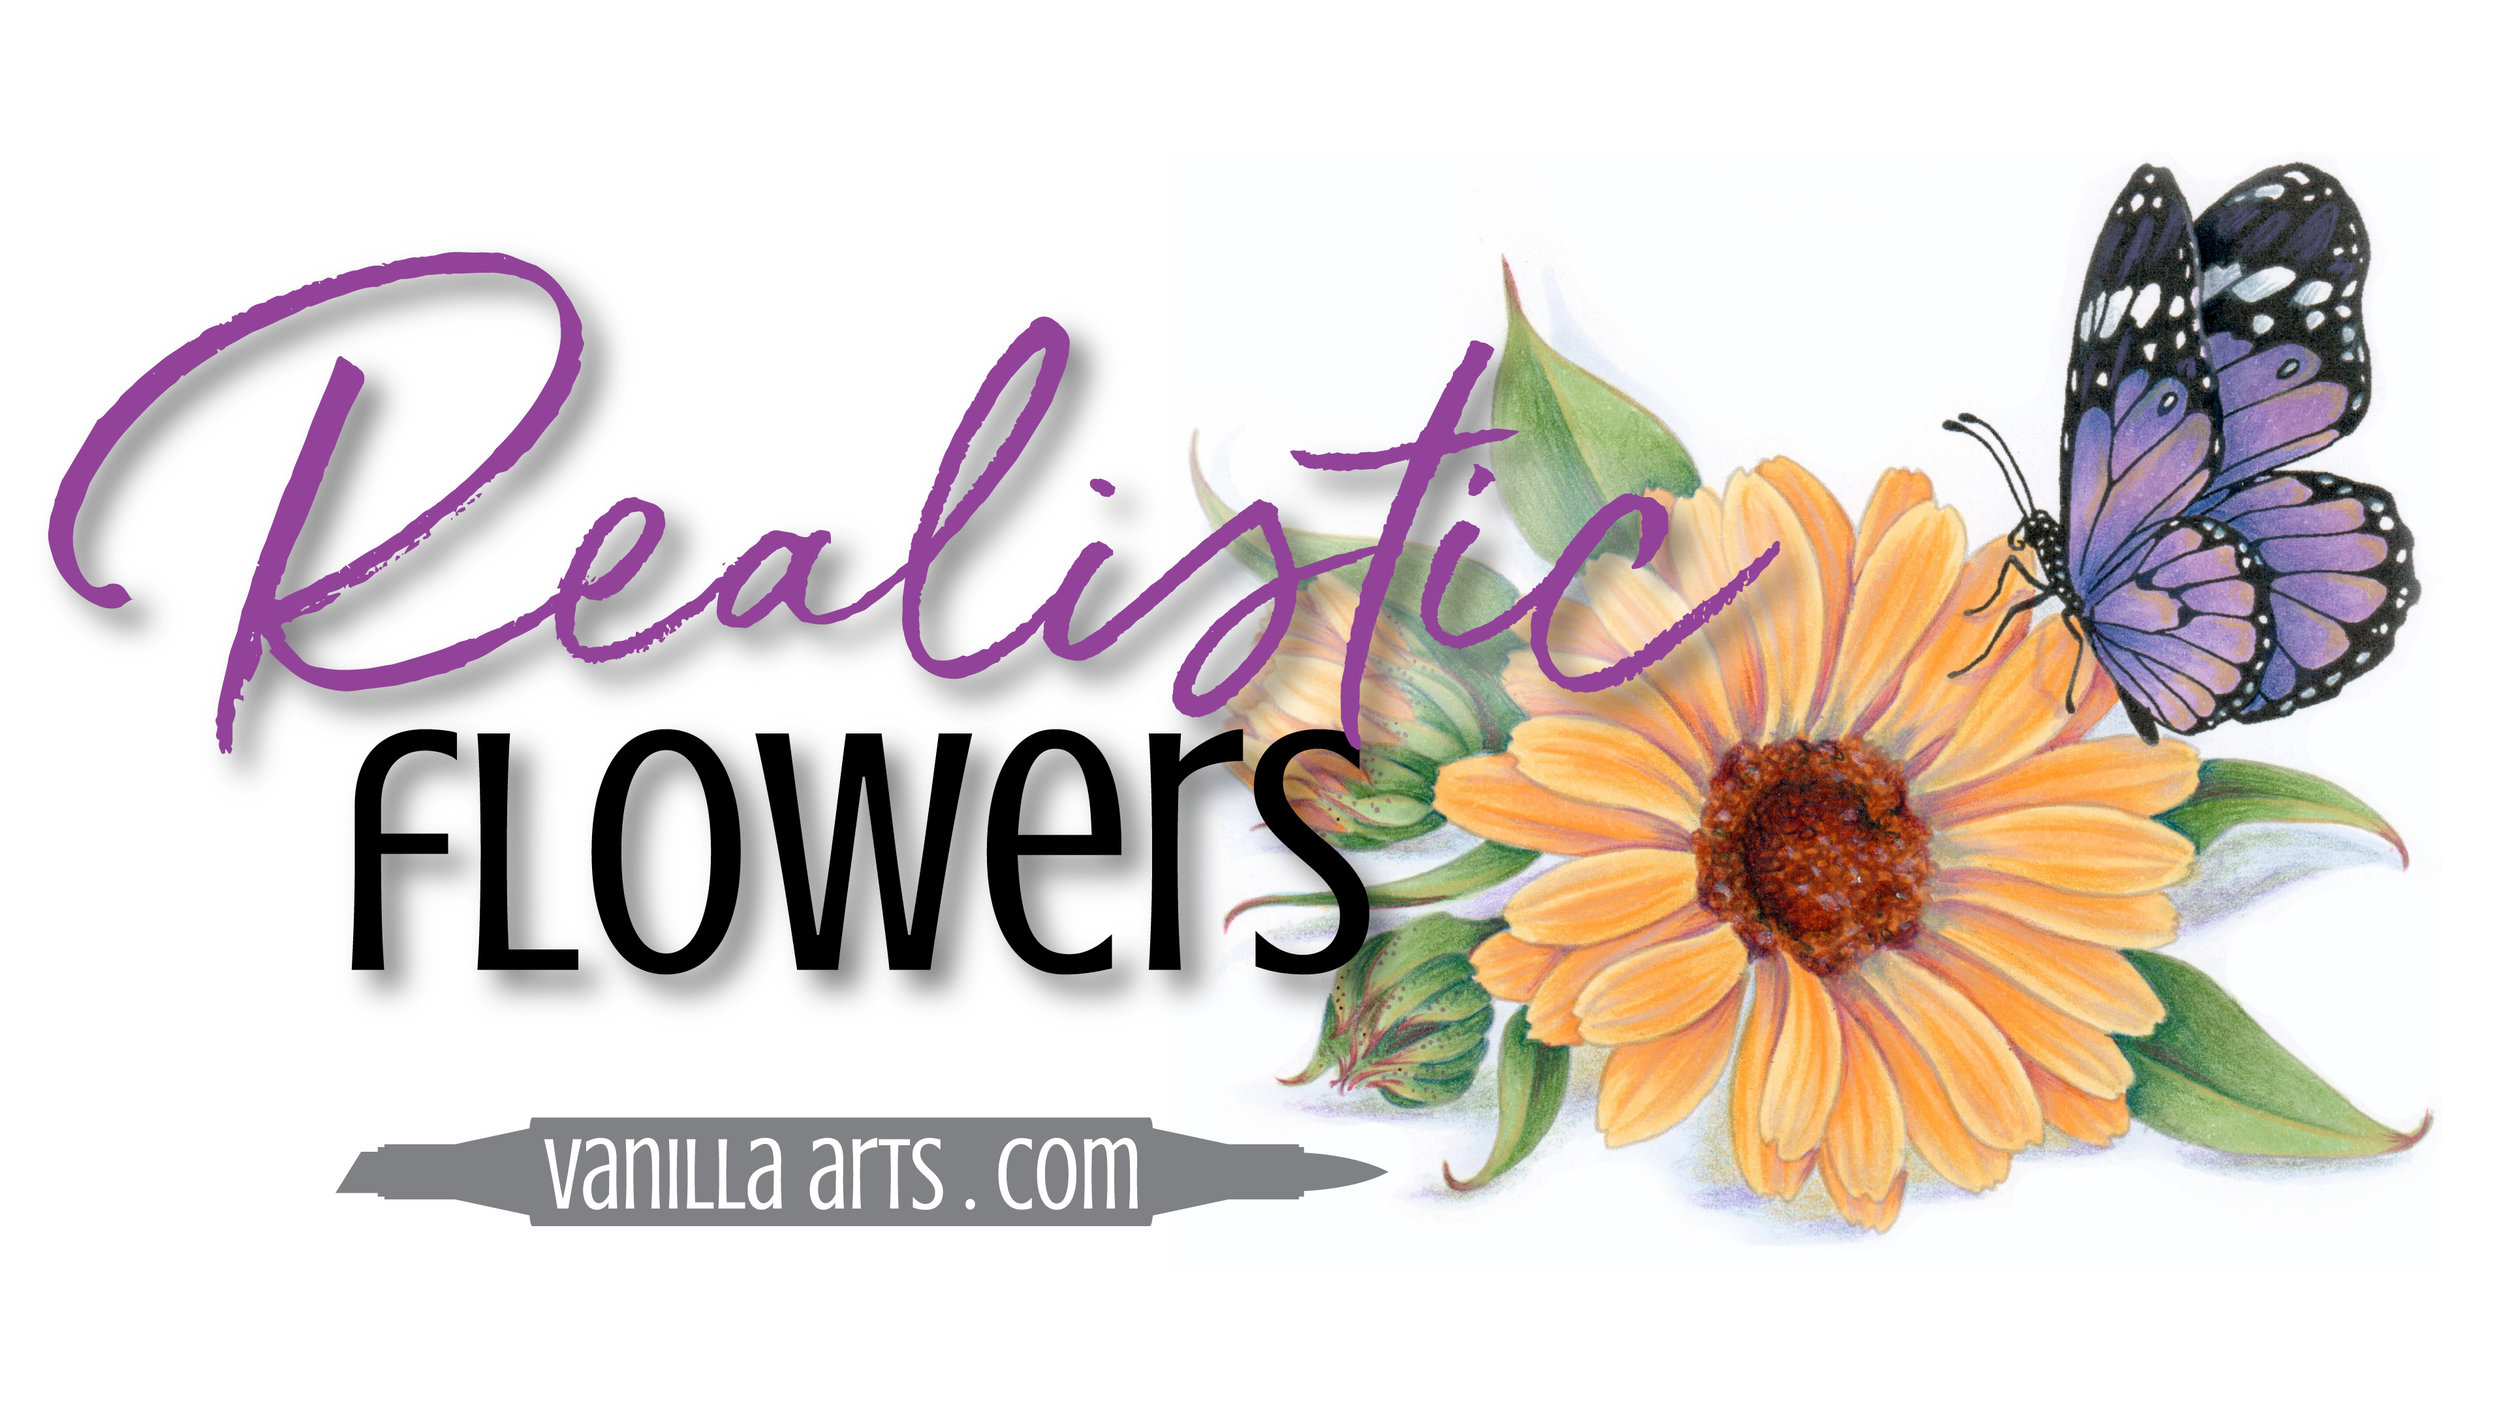 Do your Copic Marker and colored pencil flowers look fake, flat, and artificial? It's not you, it's the technique that's bad. Learn how to add back true depth & dimension to your florals and botanicals using a fine art approach. | VanillaArts.com | #copicmarker #coloredpencil #realisticcoloring